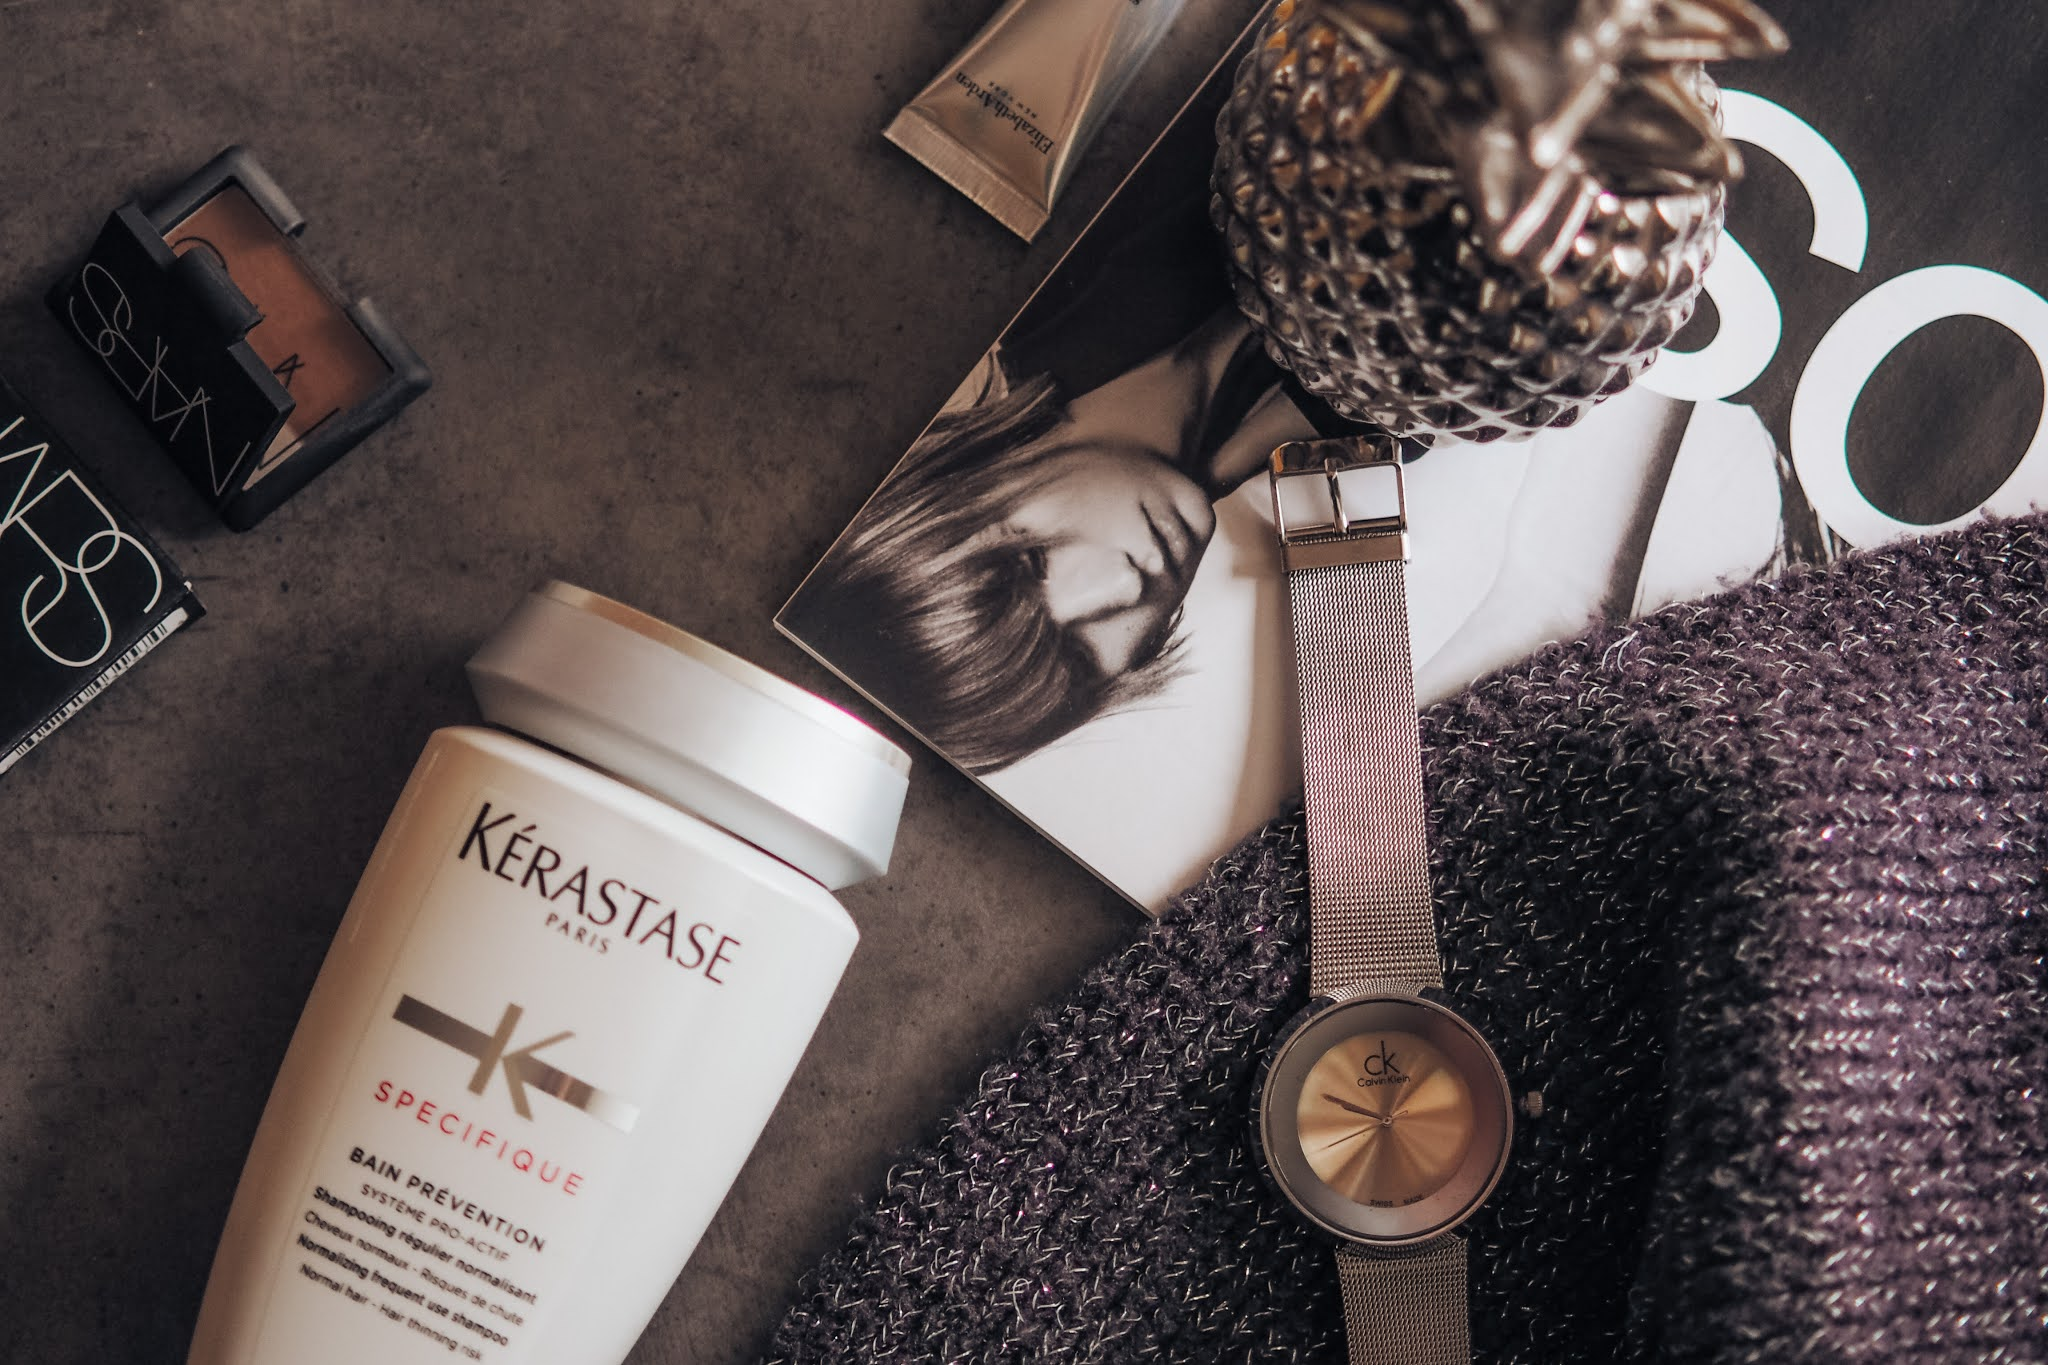 kerastase specifique bain prevention sampon notino